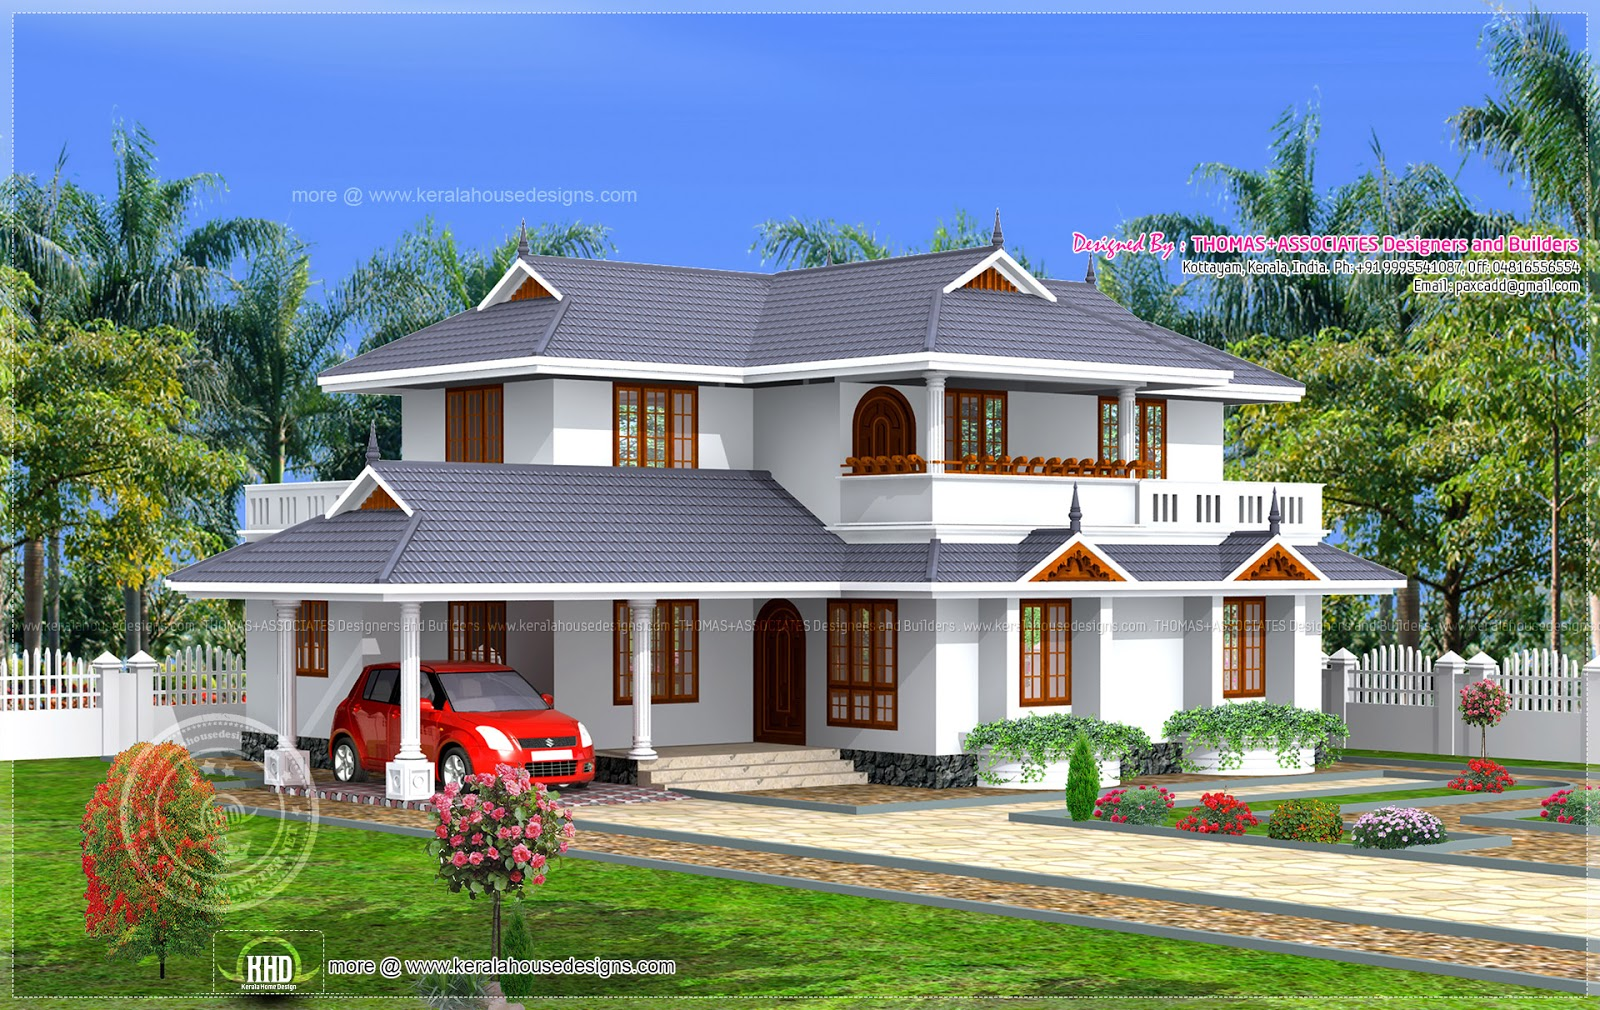 House Plans And Design House Plans In Kerala Model